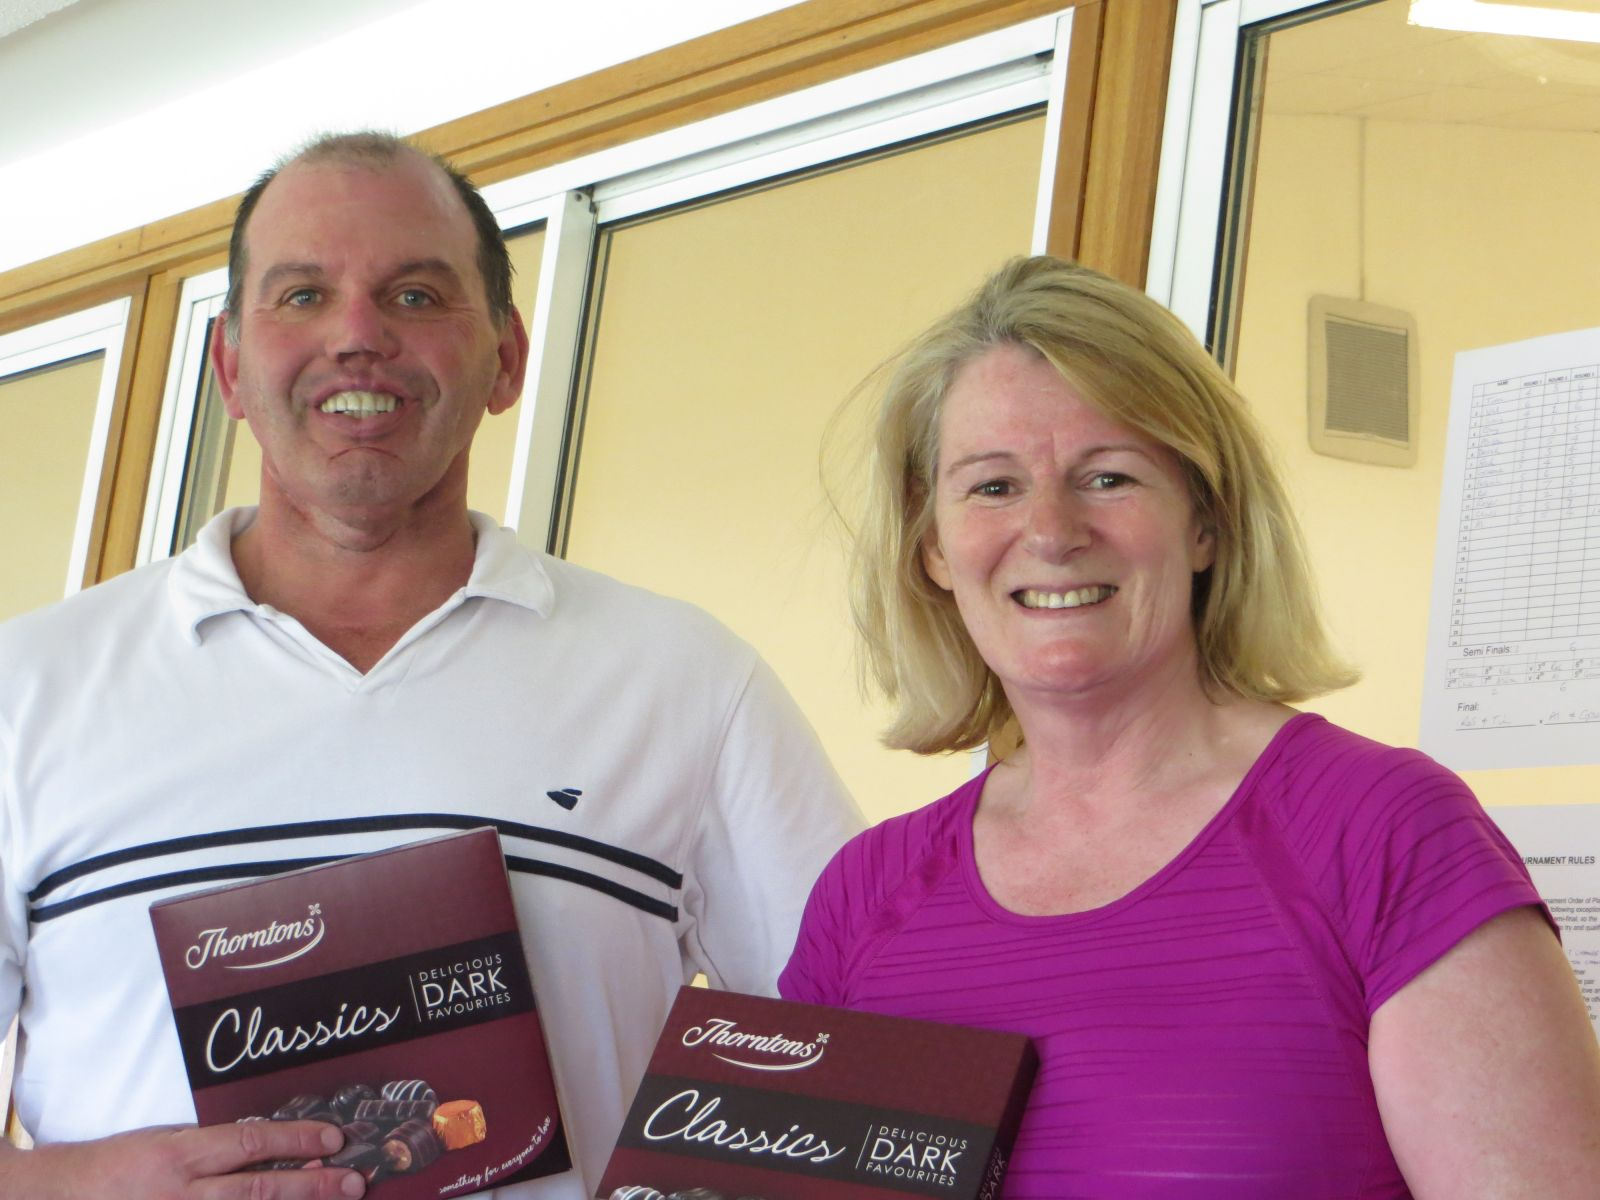 Easter 2014 Runners-up Tim Gallego & Ros Clark who lost 6-2 in the final